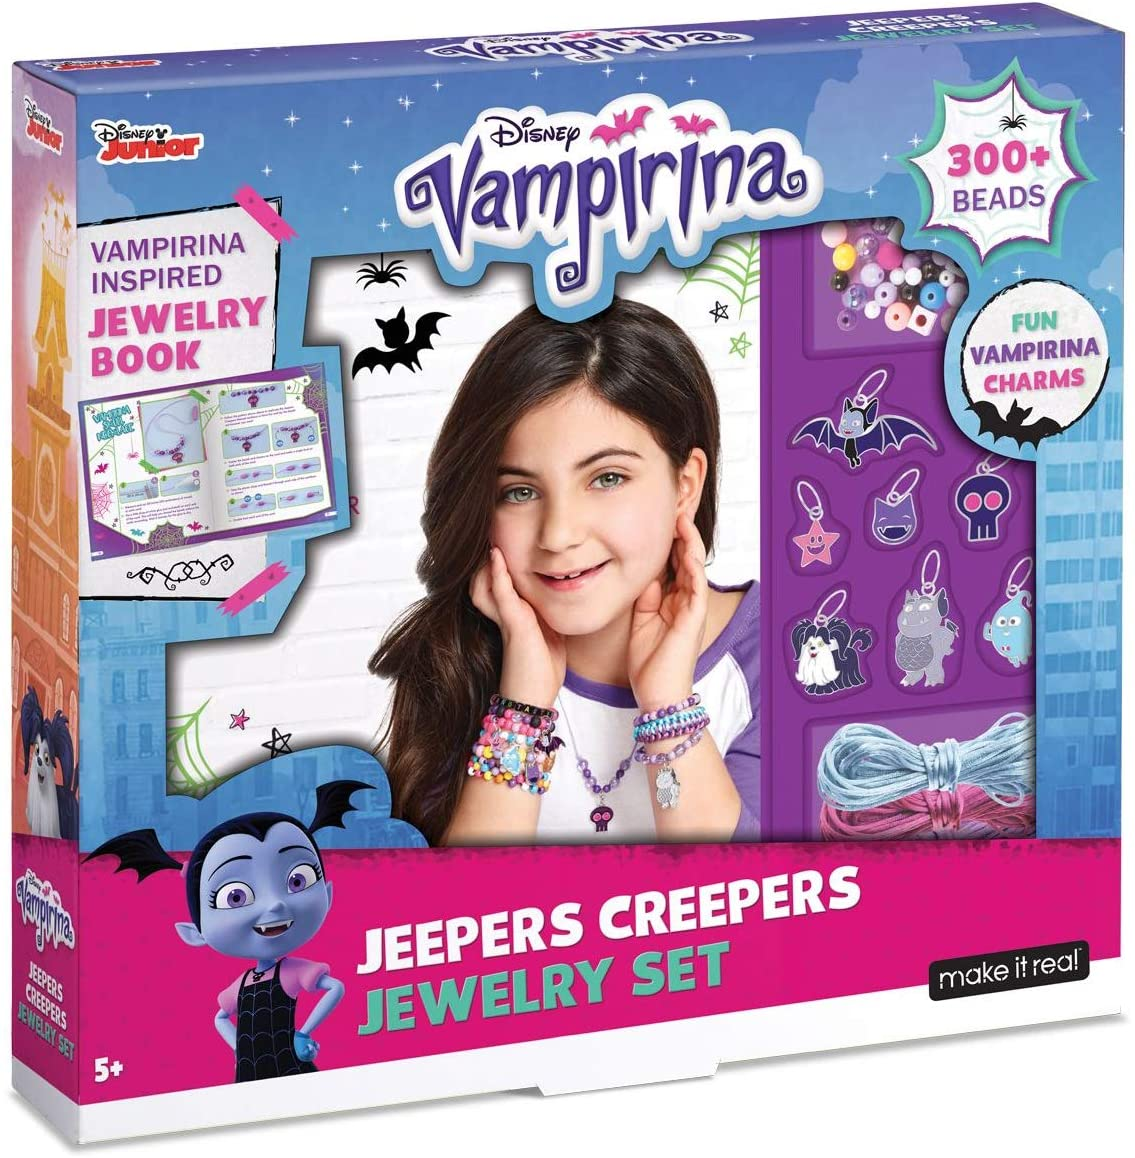 Make It Real - Disney Vampirina Jeepers Creepers Jewelry Set. DIY Jewelry Making Kit for Girls. Guides Tweens to Create Unique Charm Bracelets and Necklaces Inspired by Disney's Vampirina.